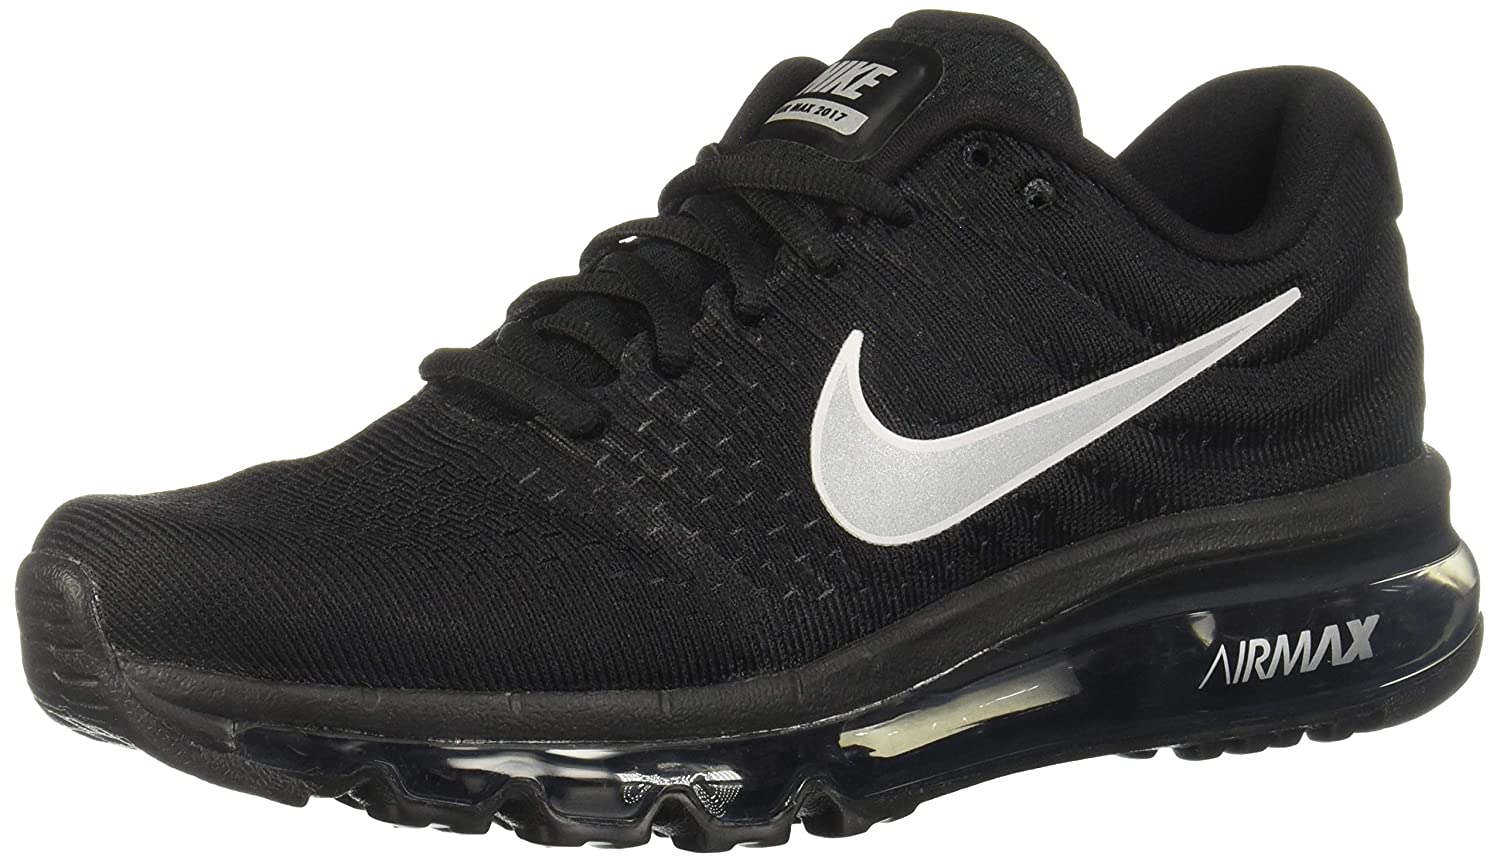 on sale 181d1 8d0d3 Amazon.com   Nike Womens Air Max 2017 Running Shoes Black White Anthracite  849560-001 Size 10   Road Running